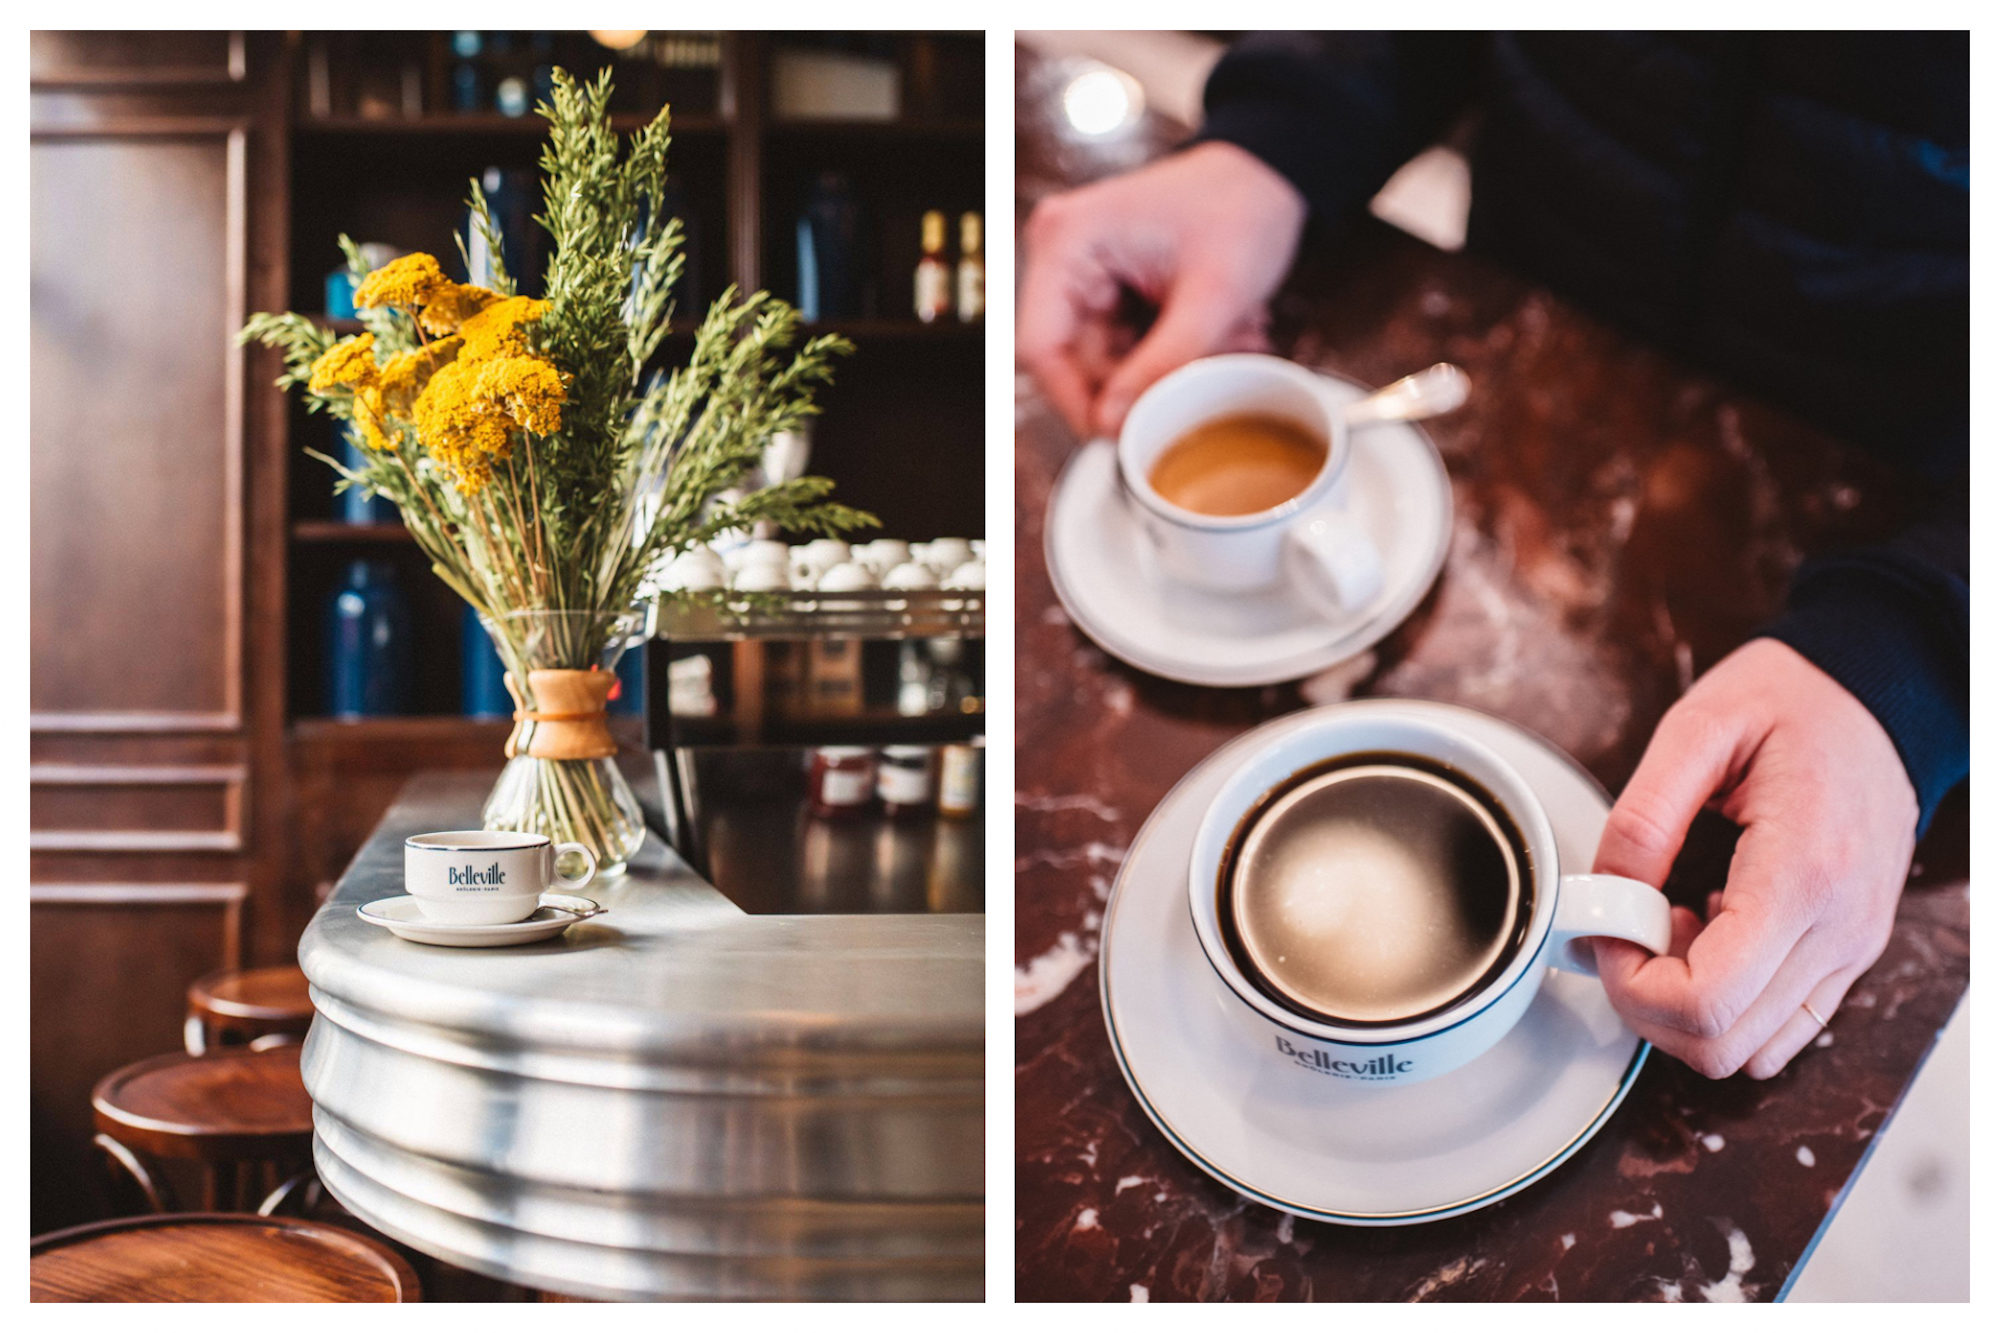 A cup of coffee on the counter of the Belleville Brûlerie coffee roasters in Paris set by a bunch of yellow dried mimosa in a vase (left). Two cups of coffee at the Belleville Brûlerie gluten-free coffee shop in Paris, set on a brown marble counter (right).